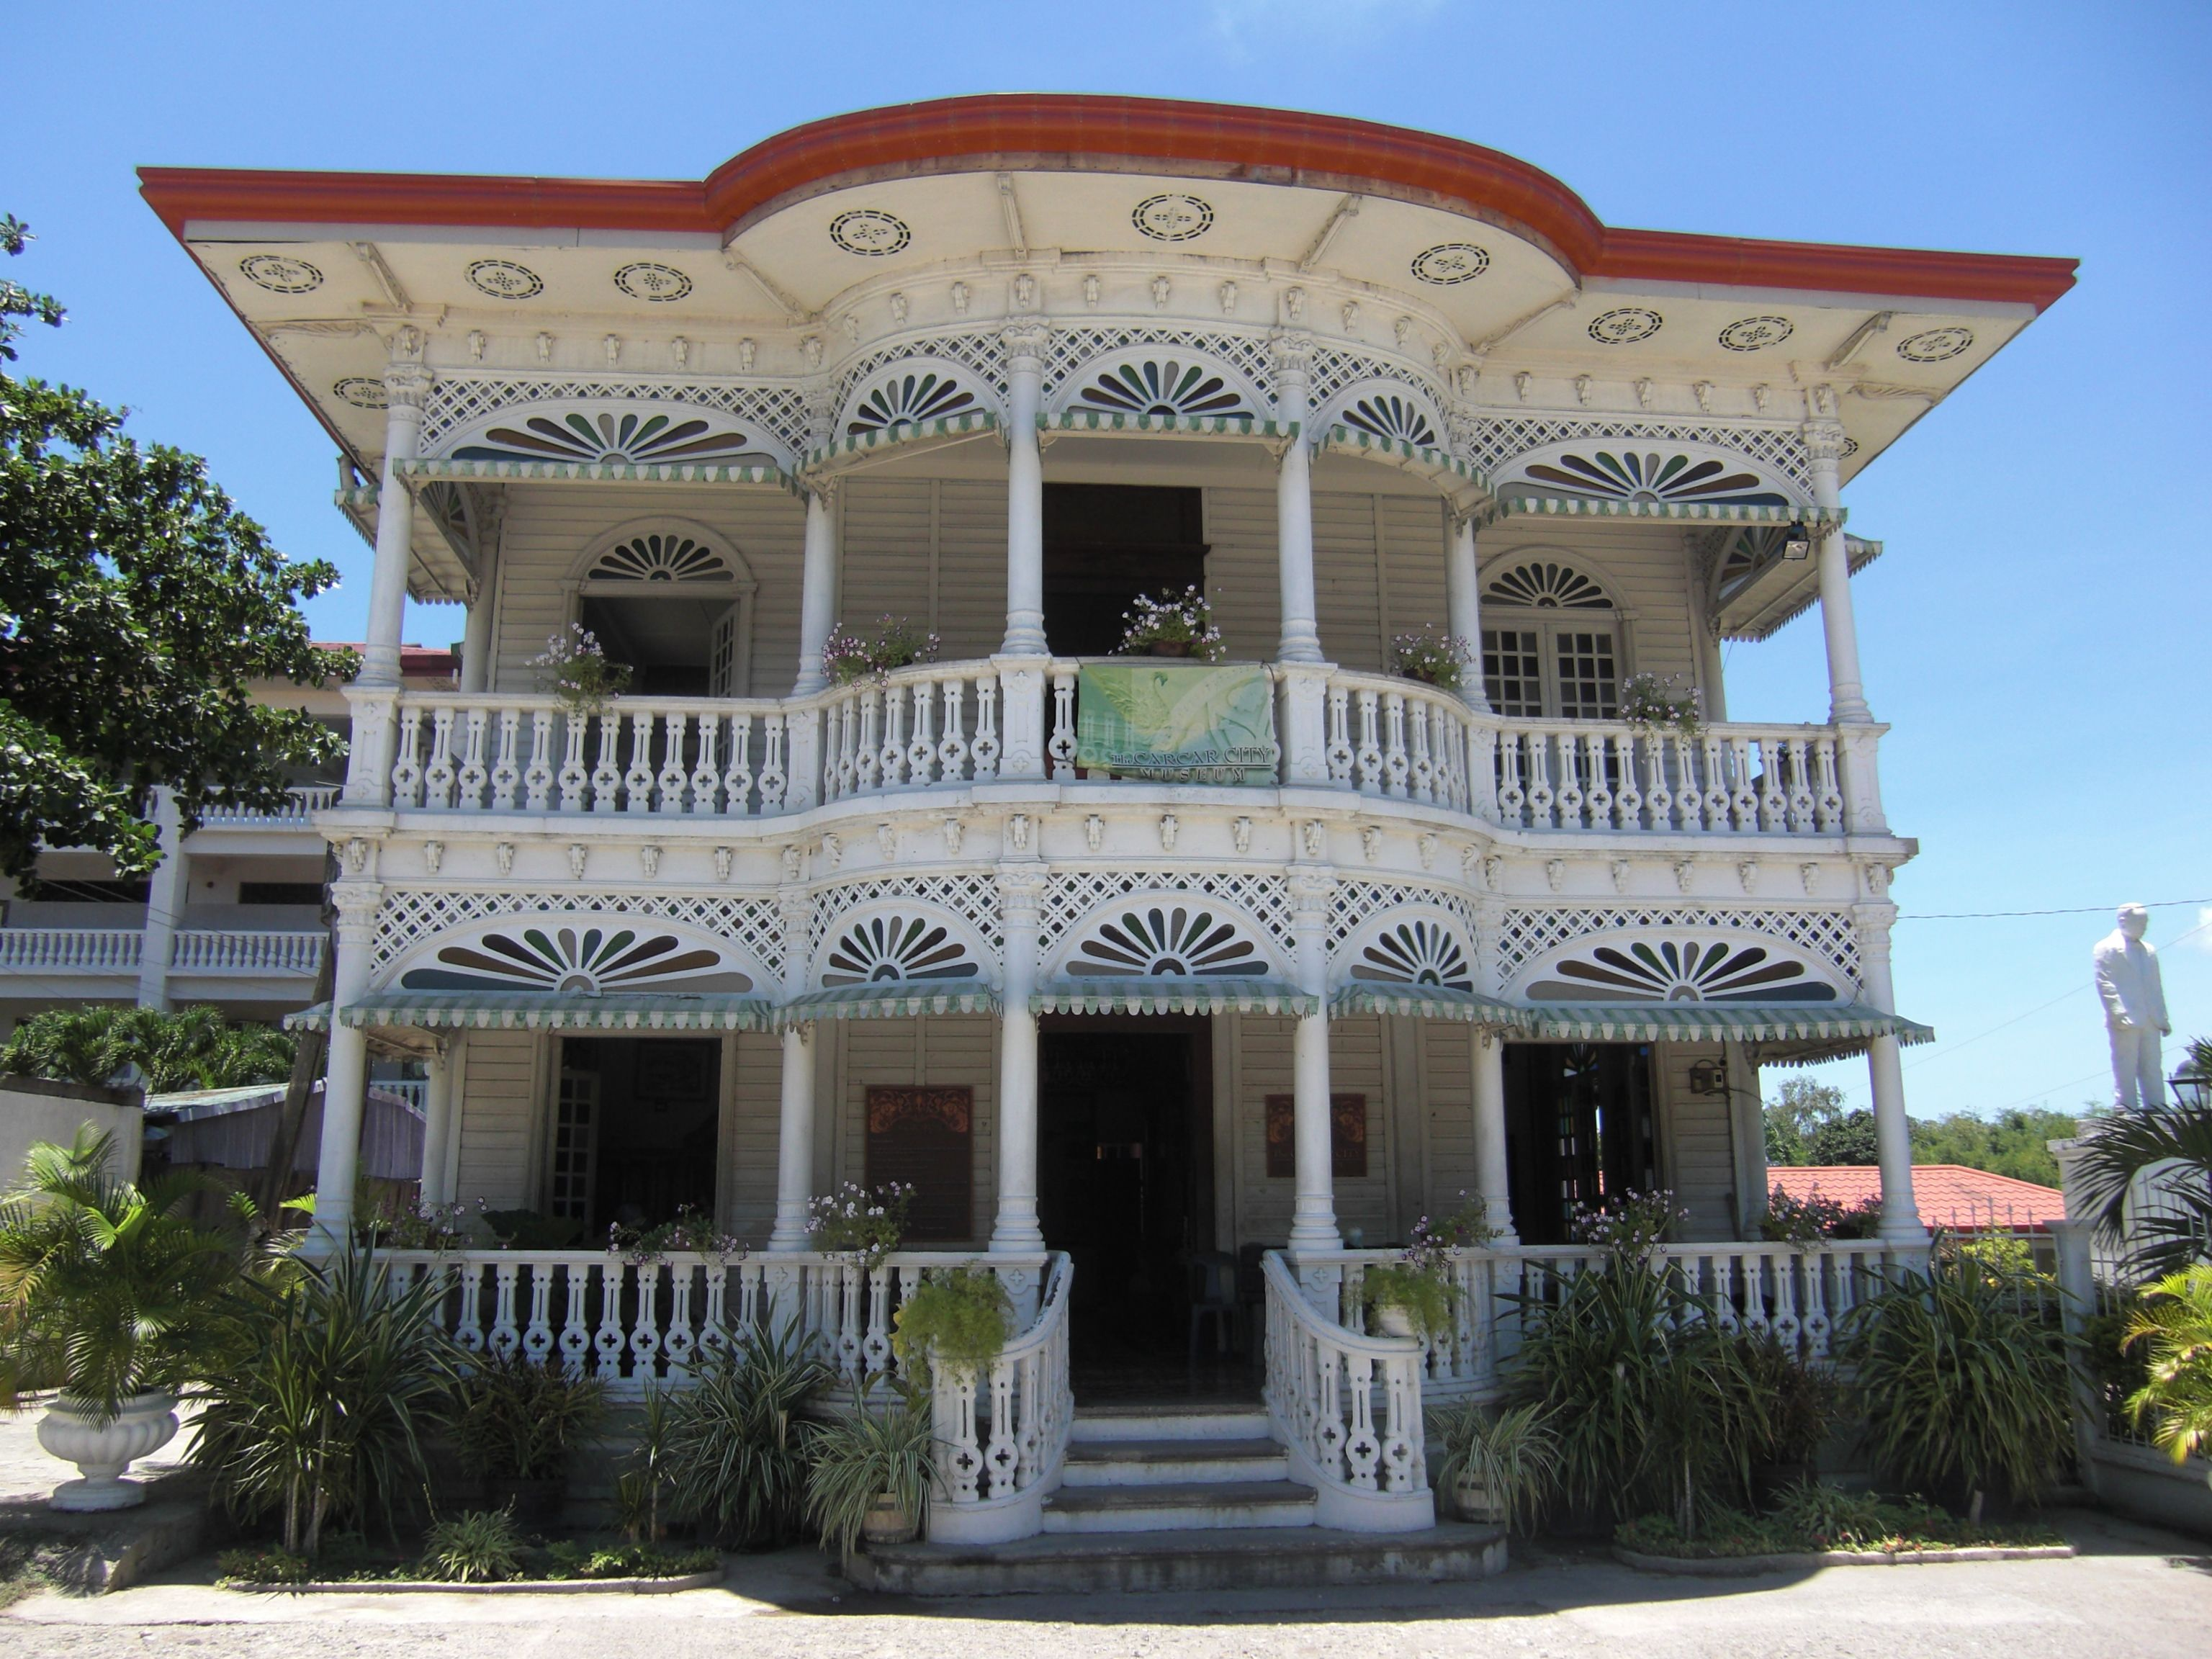 Cebu Philippines Bbc Boracaysays We Love The Old Wooden Houses Here In The Philippines